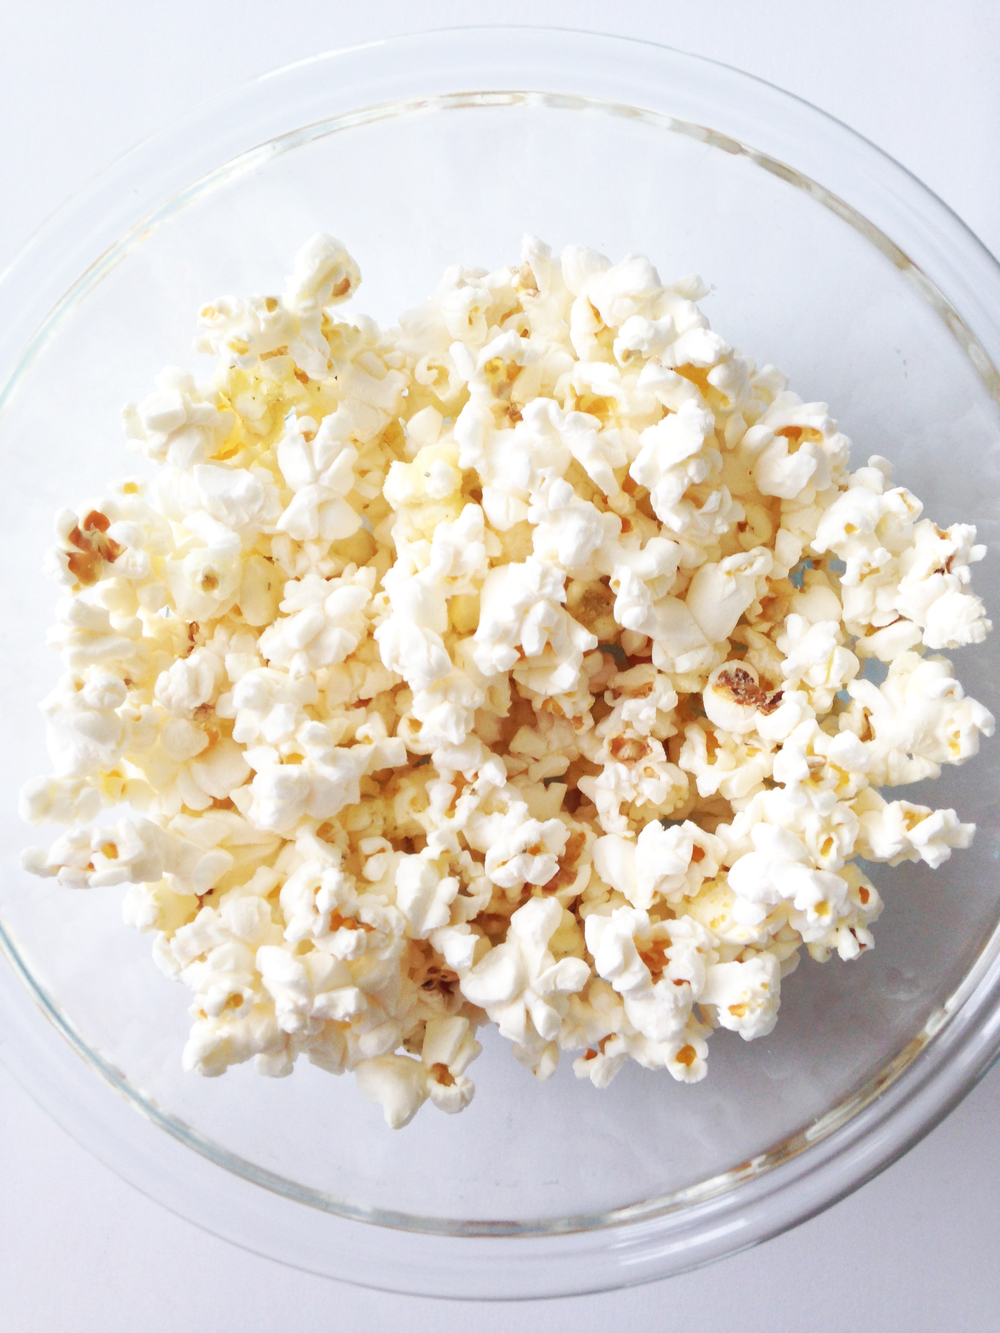 Can Plain Popcorn Be Part Of A Raw Food Diet